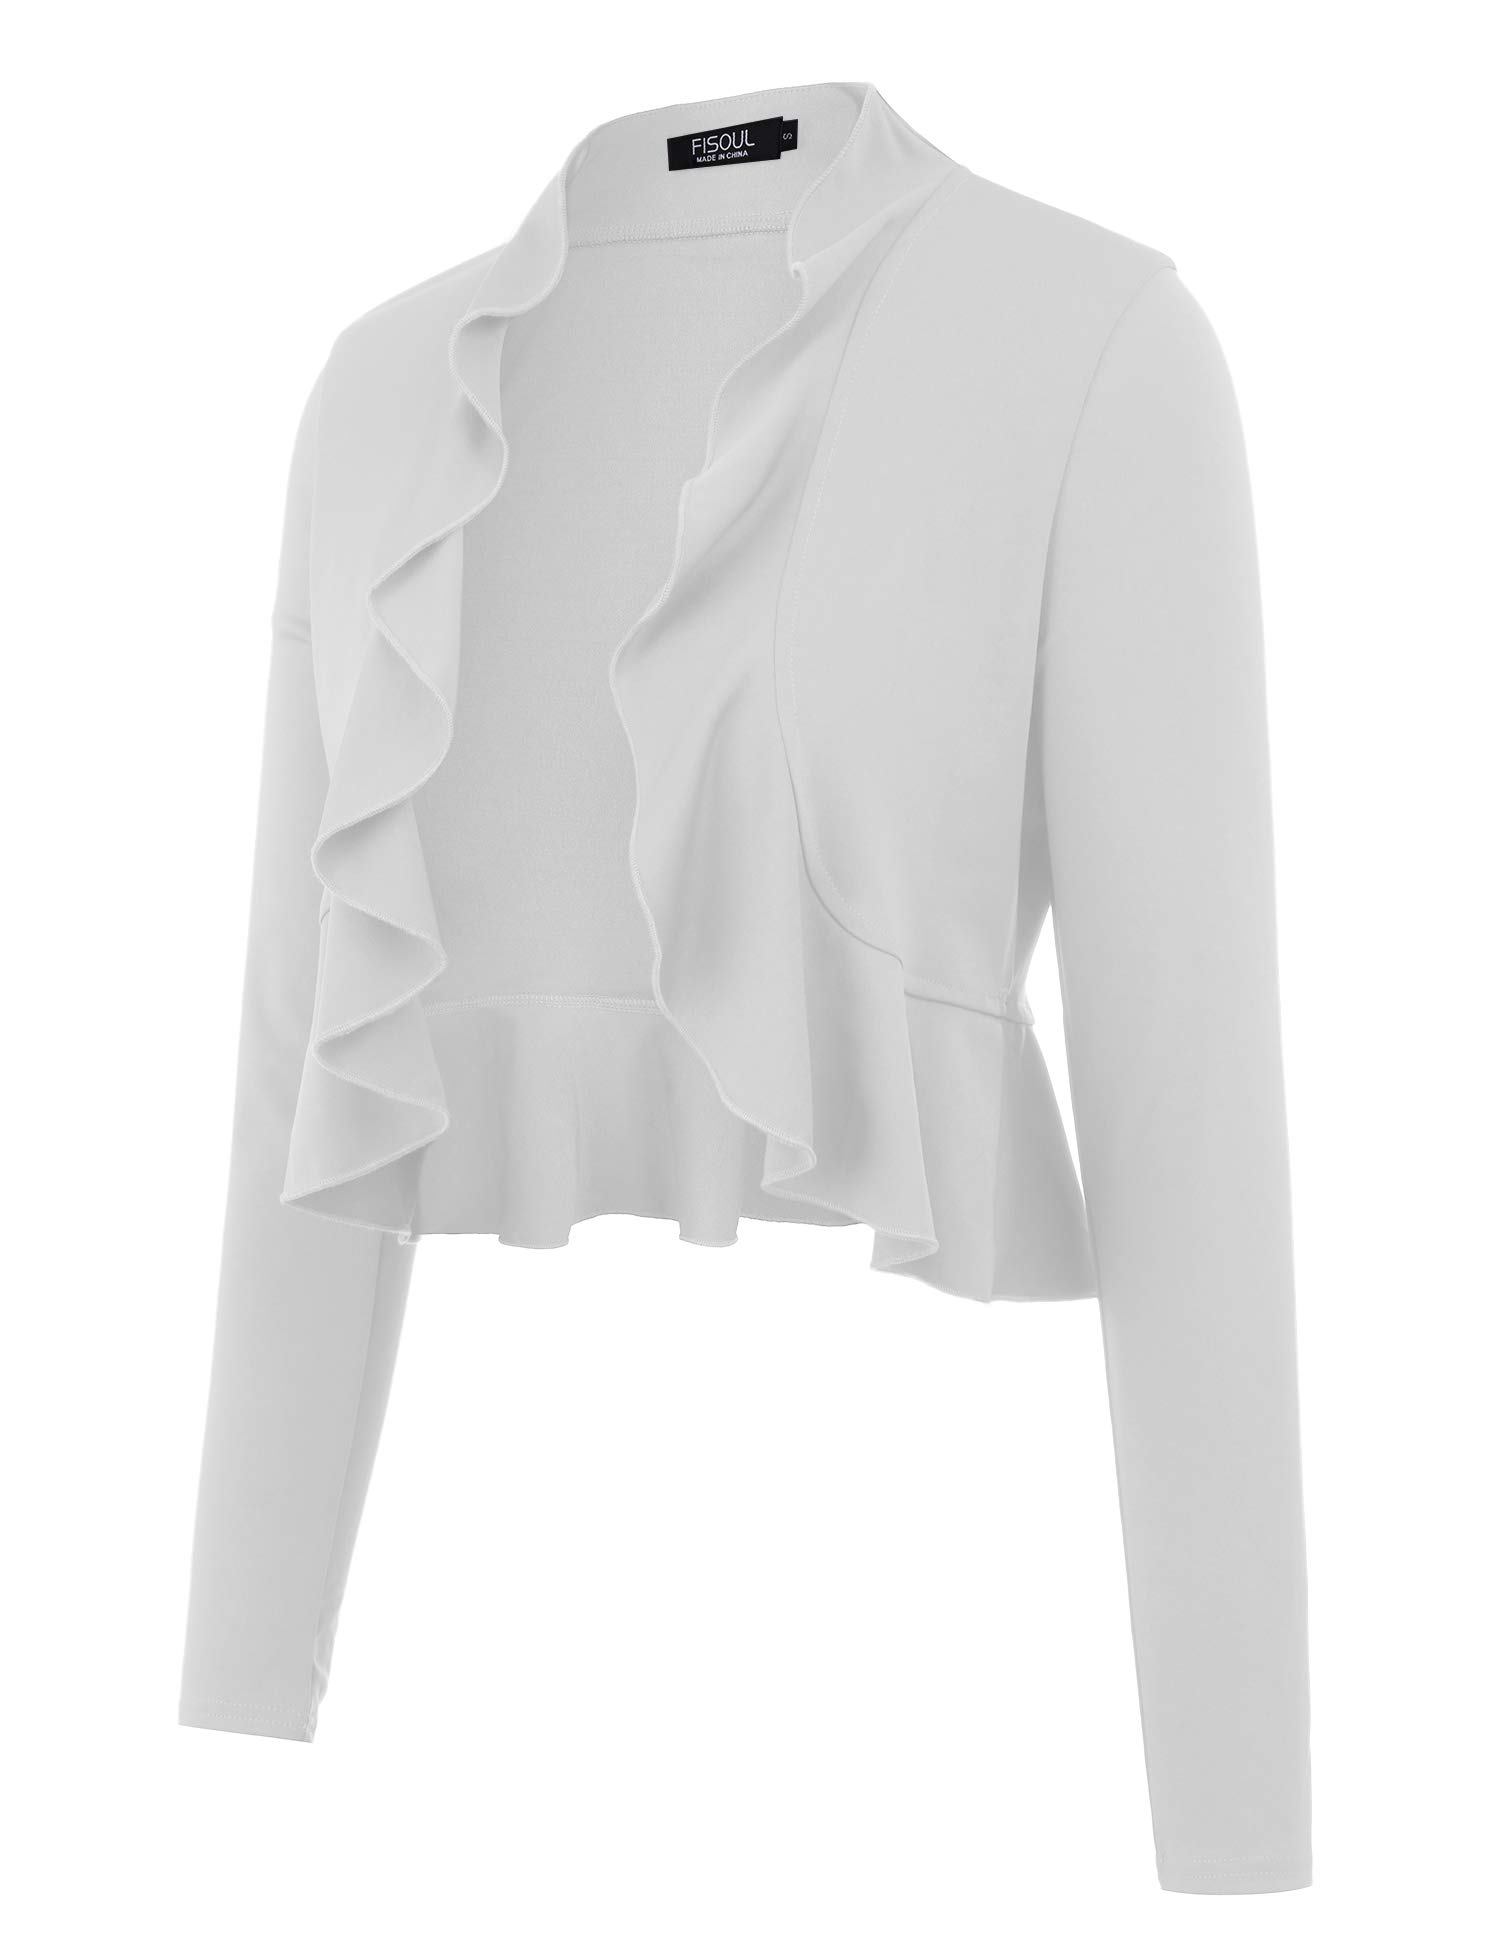 FISOUL Women's Open Front Cropped Cardigan Lone Sleeve Casual Shrugs Jacket Draped Ruffles Lightweight Sweaters White S